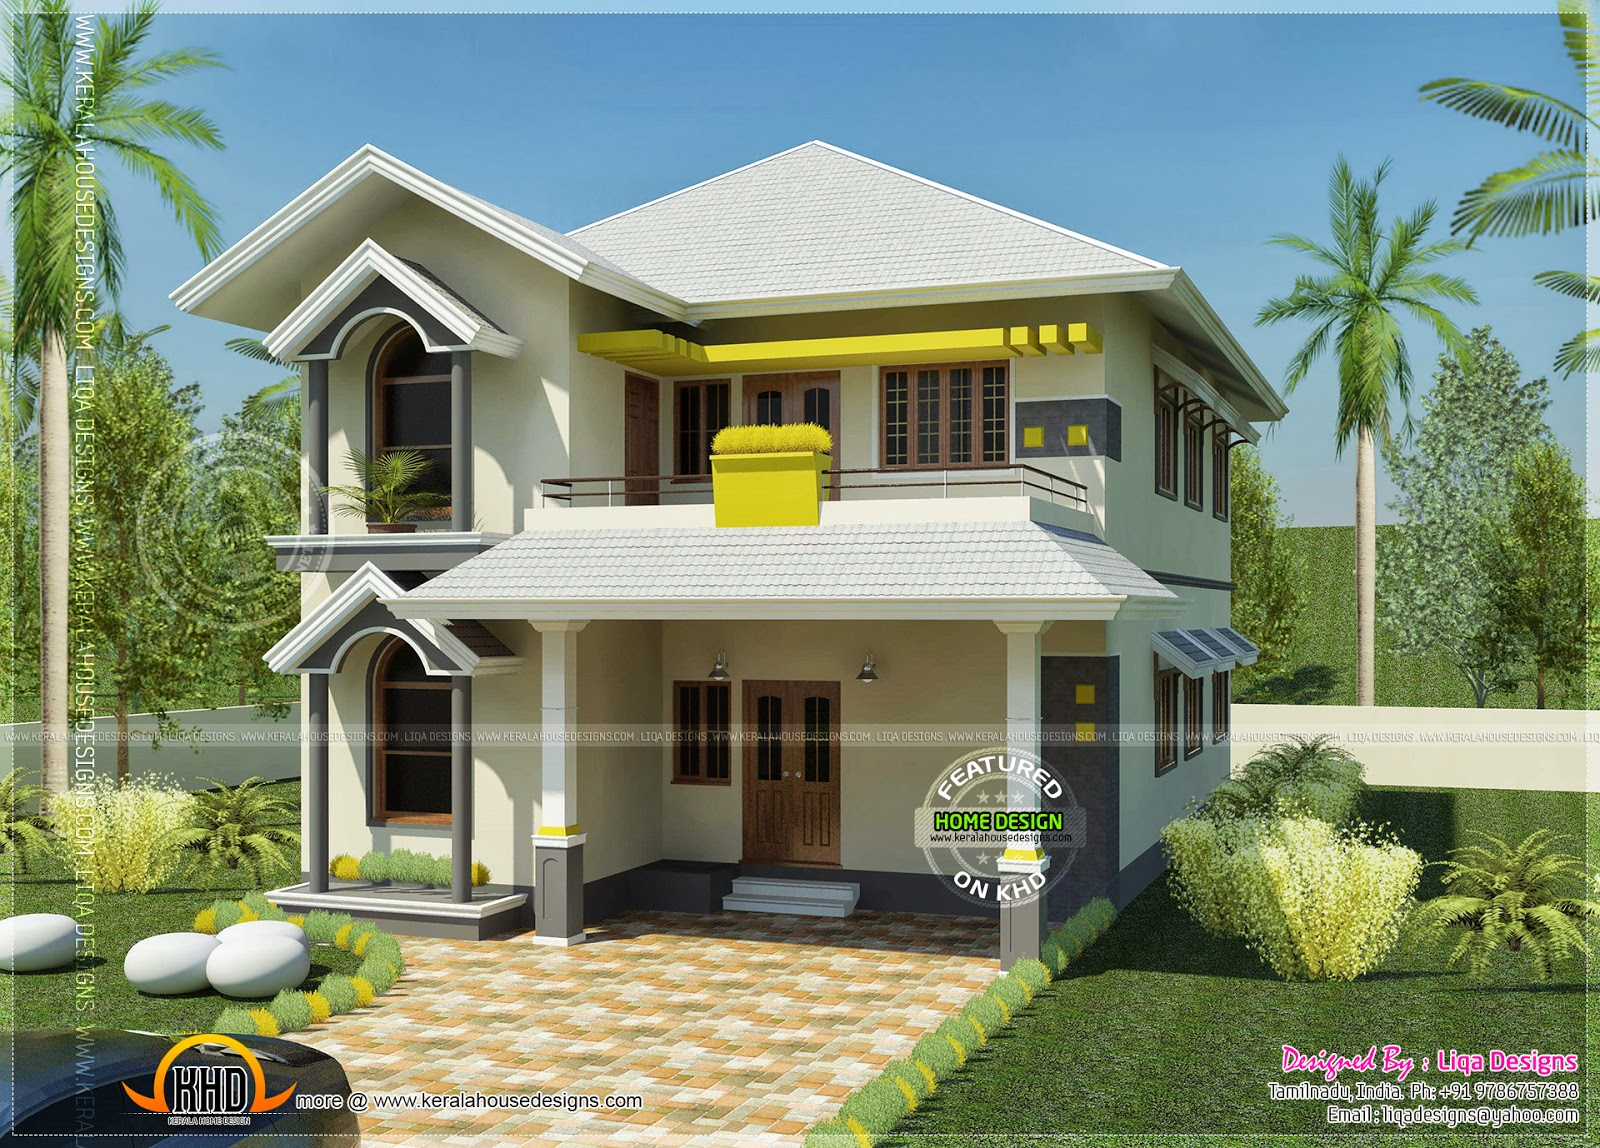 Kerala home design siddu buzz New home designs in india